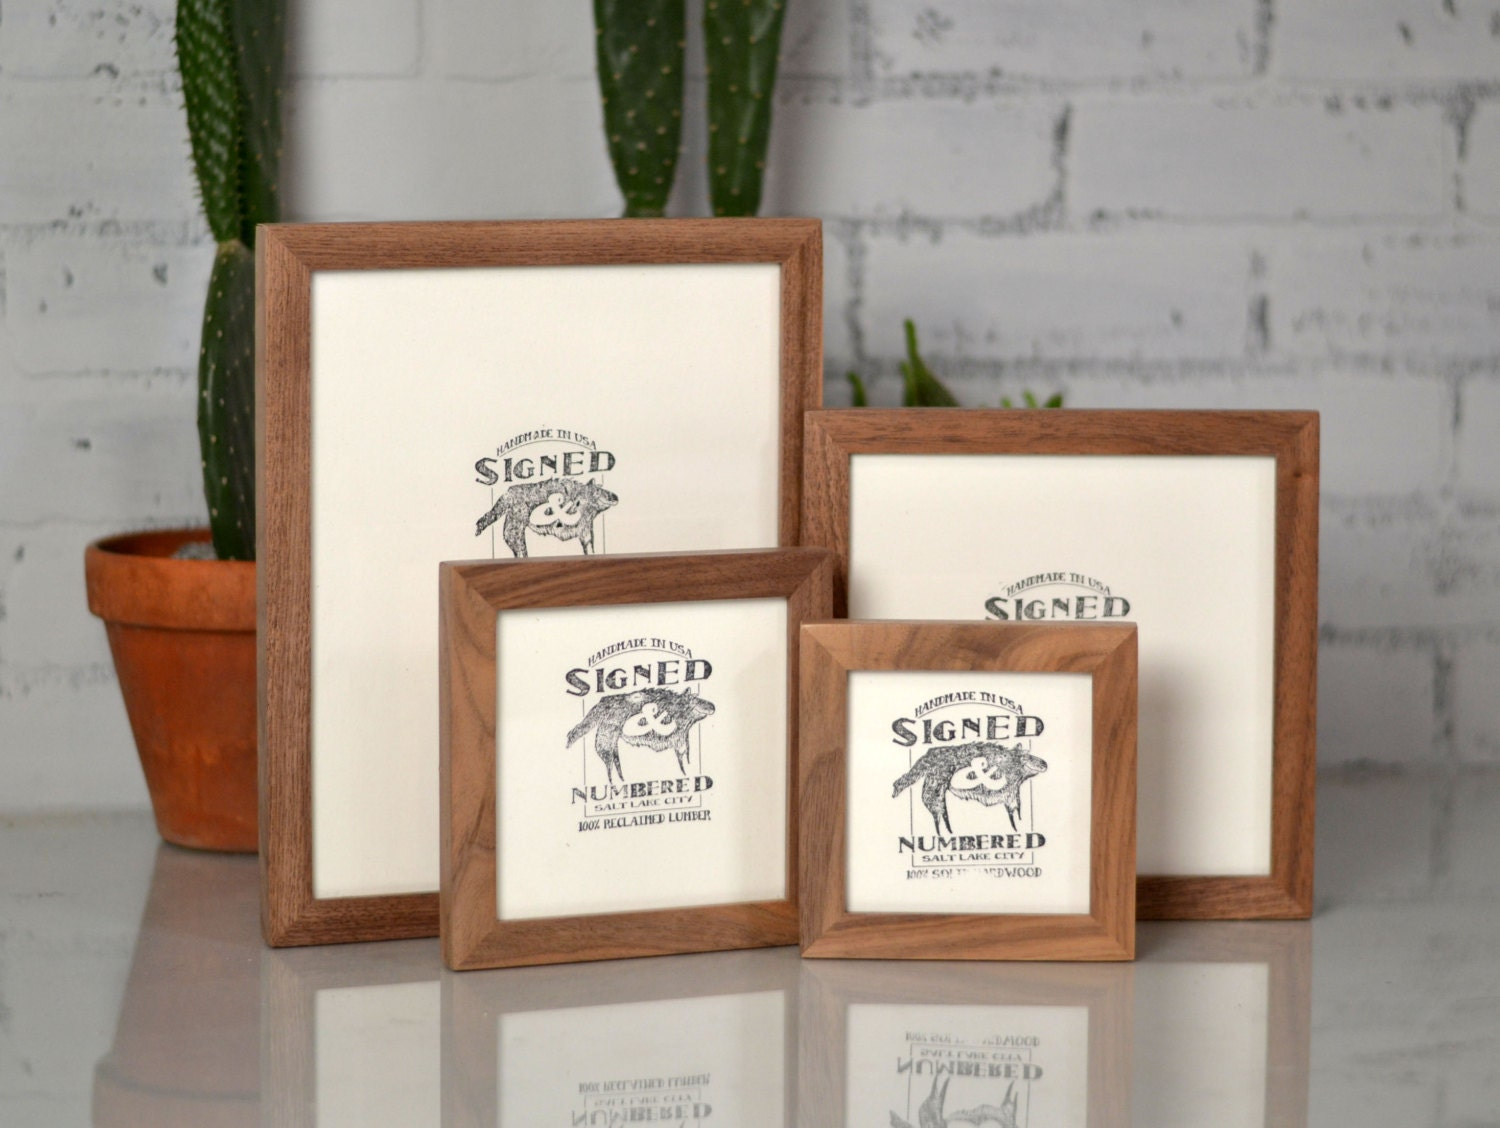 basic picture frame natural walnut solid hardwood gallery wall frames choose medium size 8x8 7x9 8x10 9x9 8x12 85x11 or a4 83x117